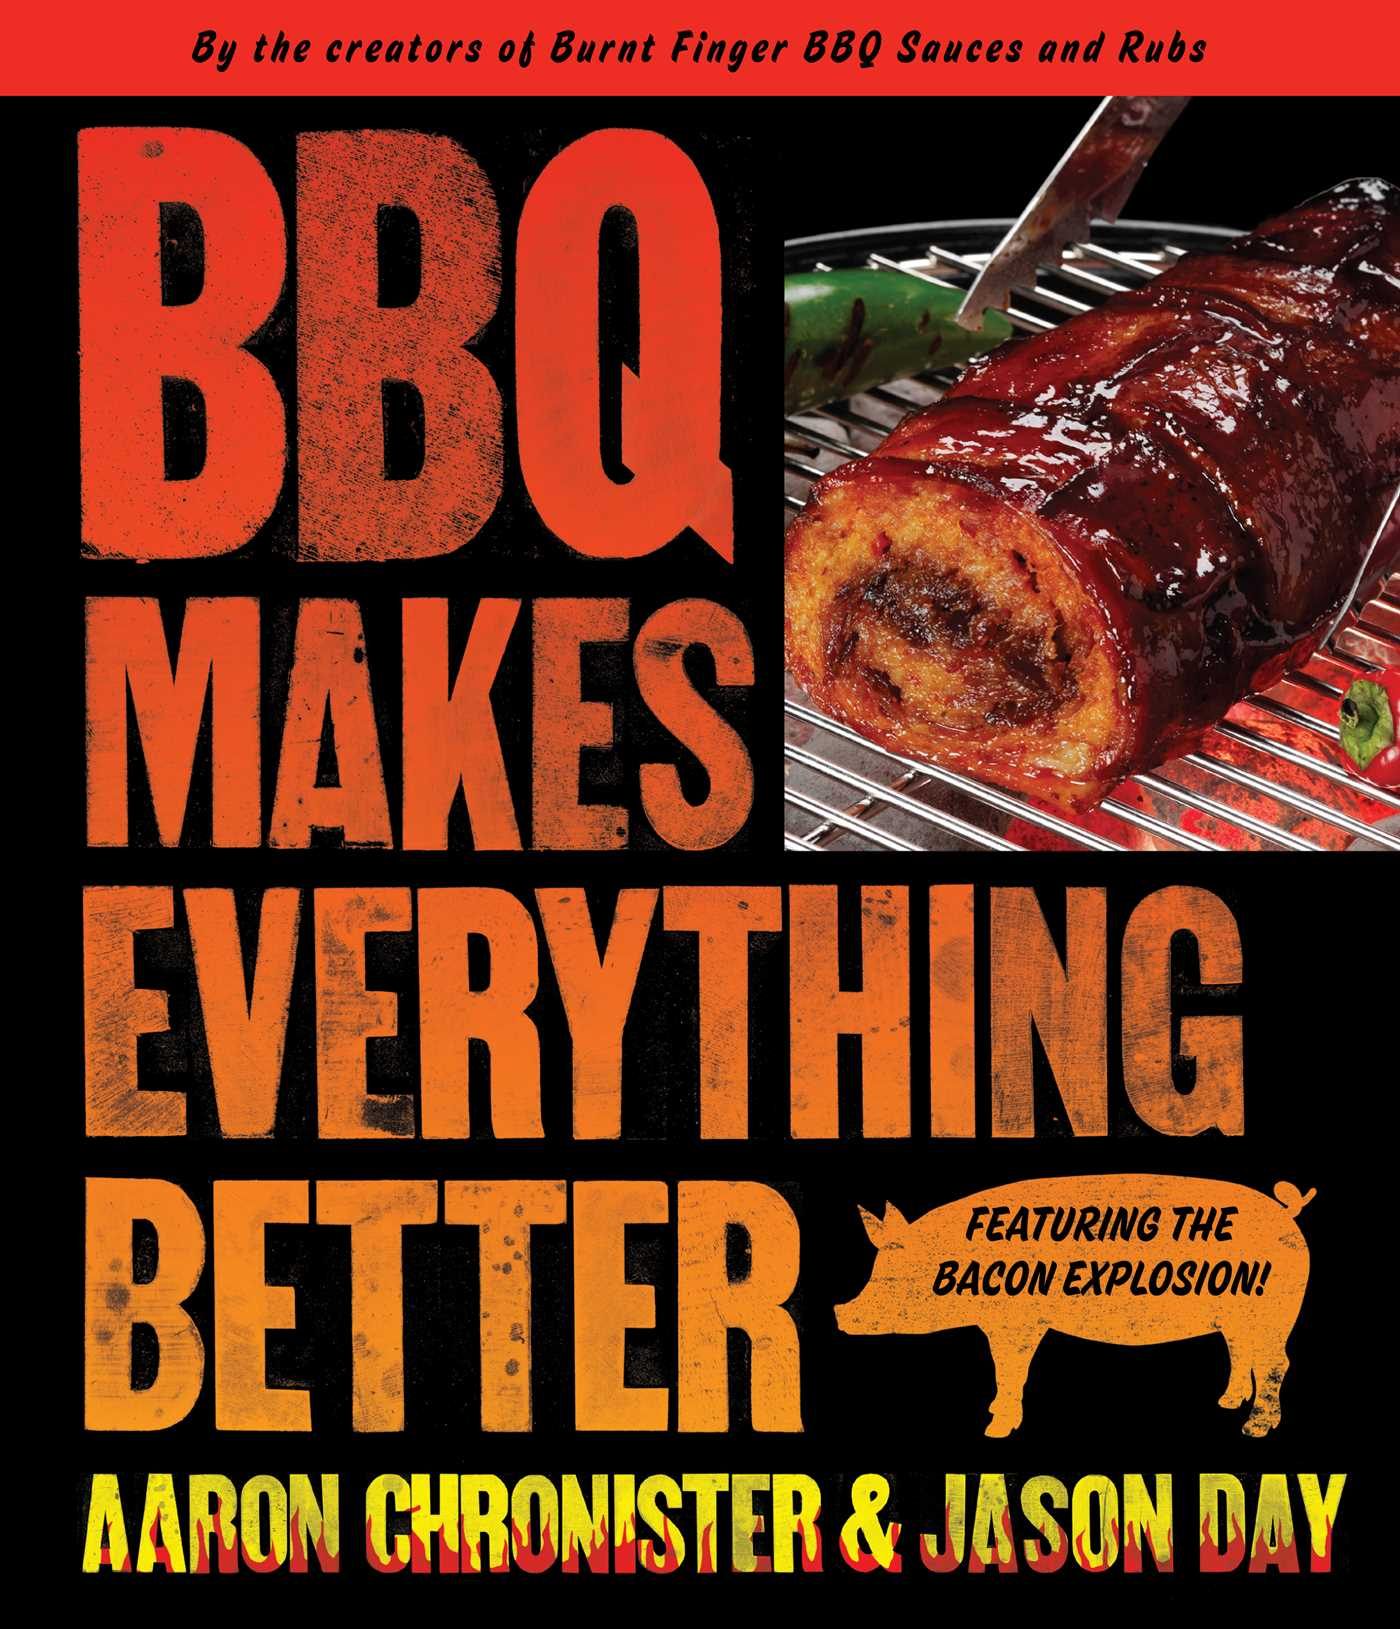 Bbq-makes-everything-better-9781439168325_hr